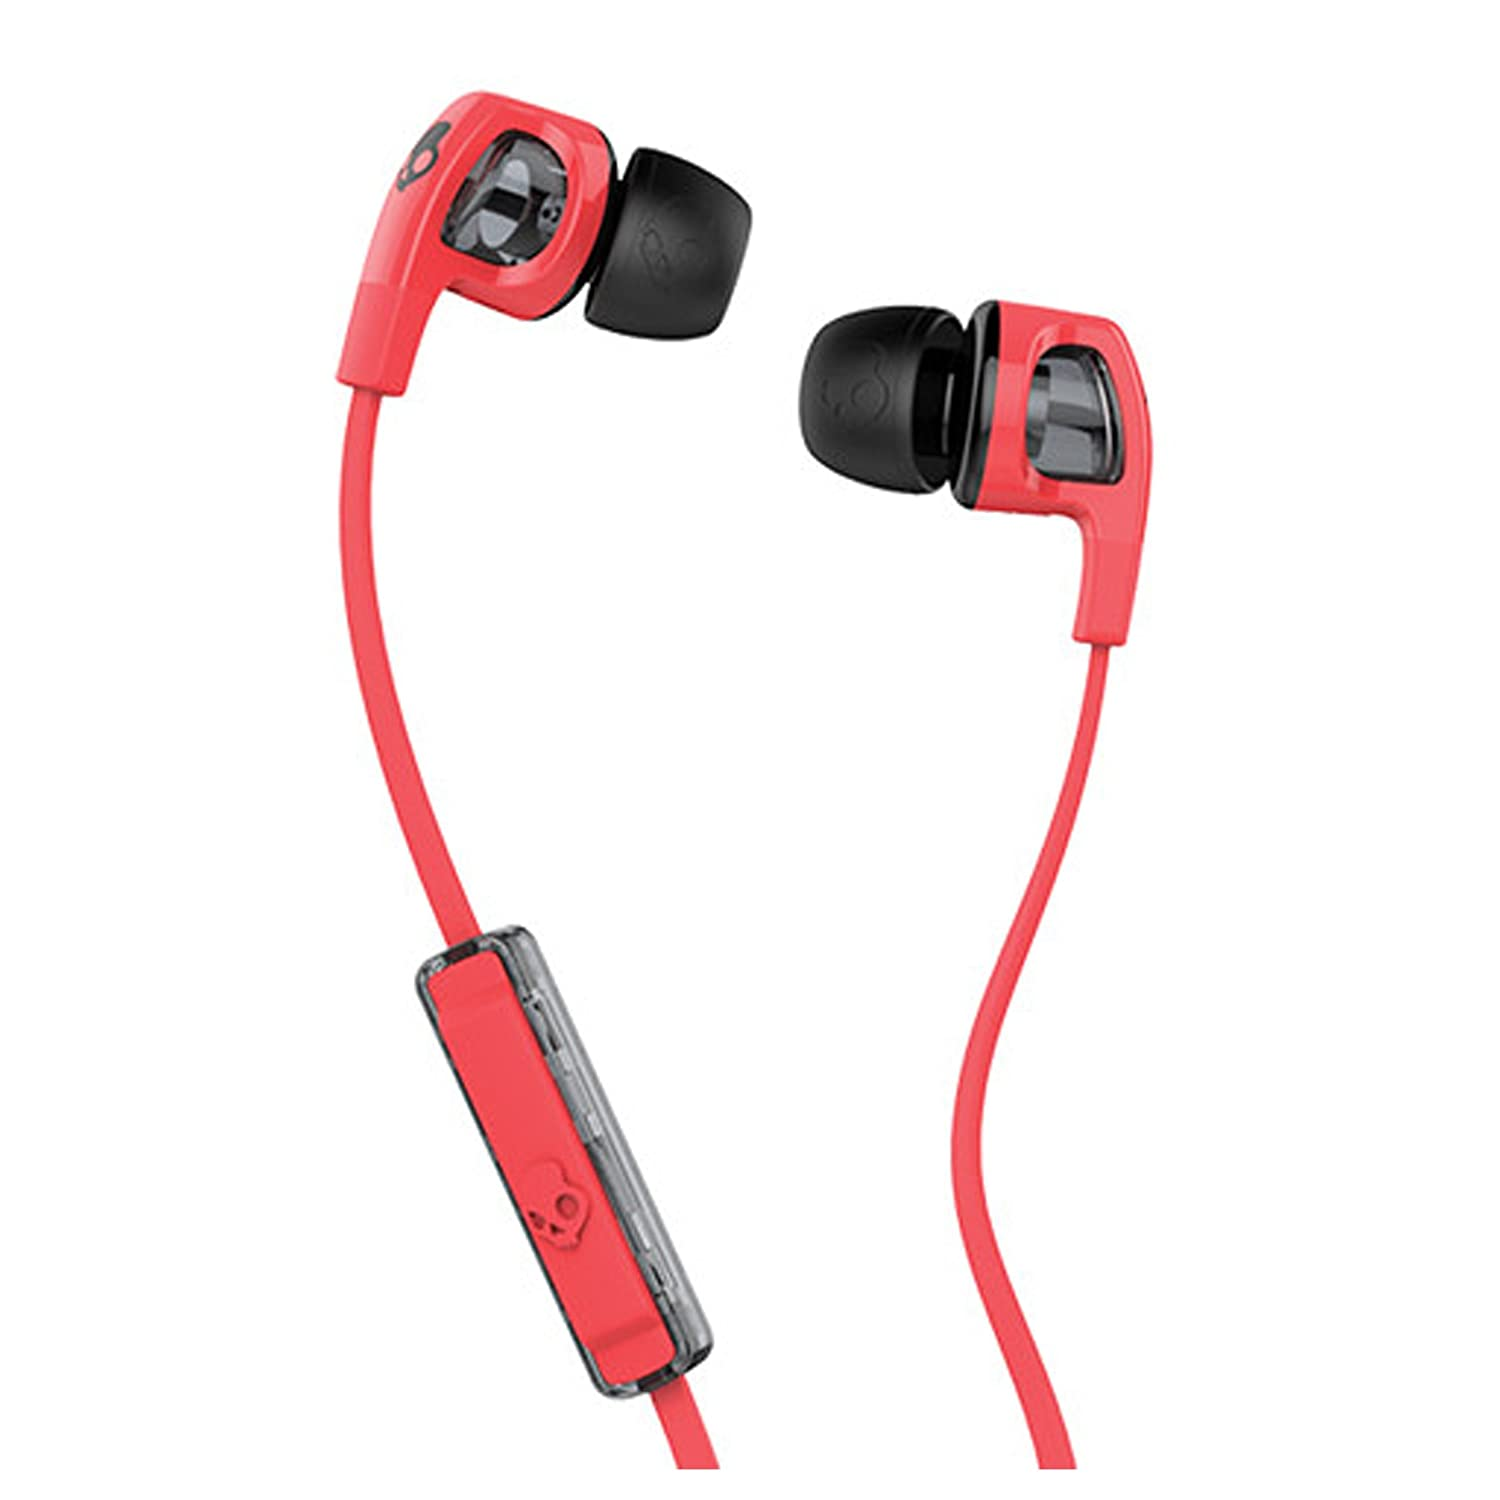 Skullcandy Smokin' Buds 2 Noise Isolating Earbuds with In-Line Microphone and Remote, Moisture Resistant, Oval-Shaped and Angled for Long-Term Comfort, Black/Red - S2PGFY-010